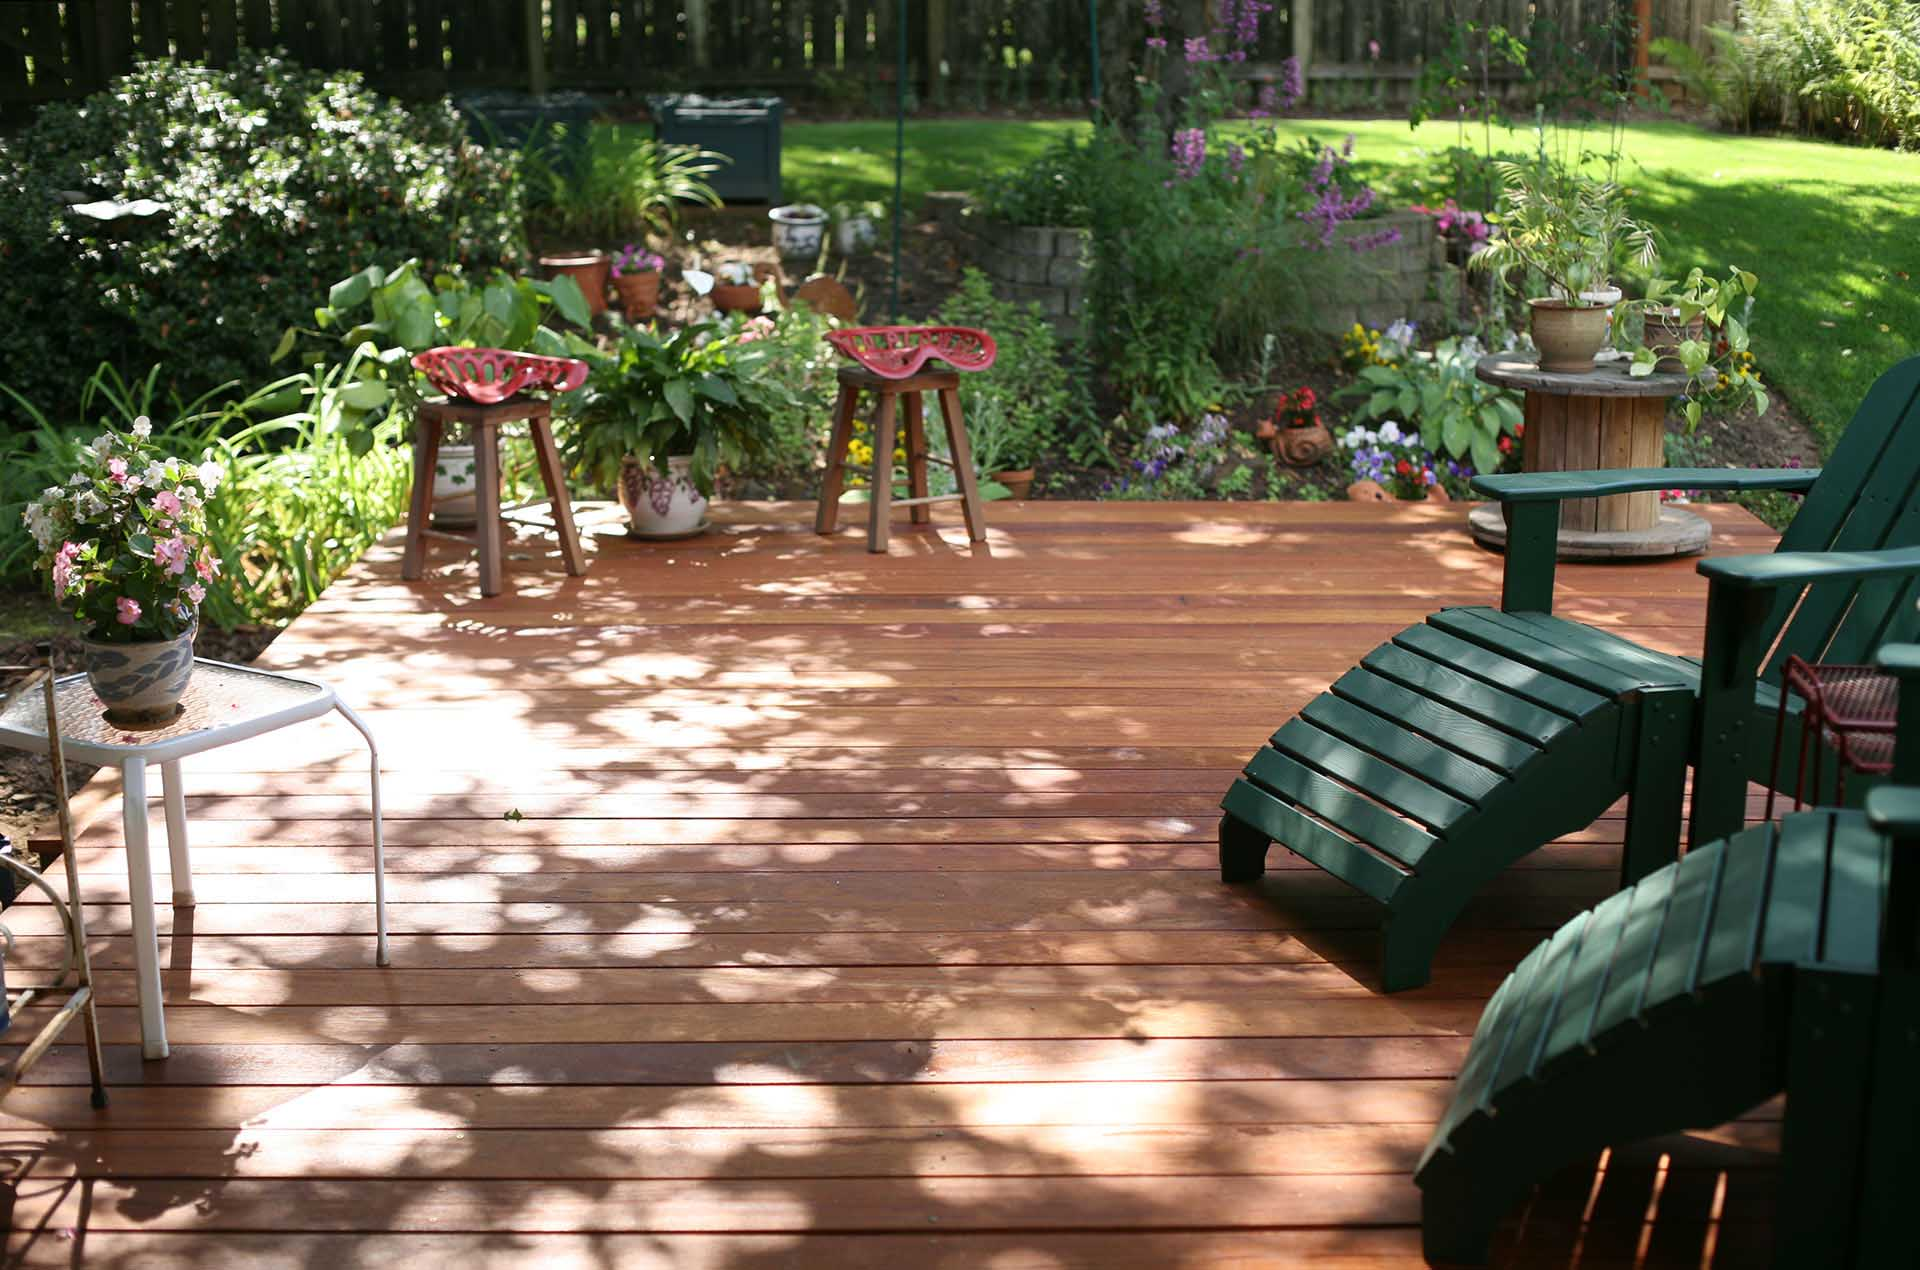 Hardwood_Decking_angelim-pedra-all-deck.jpg